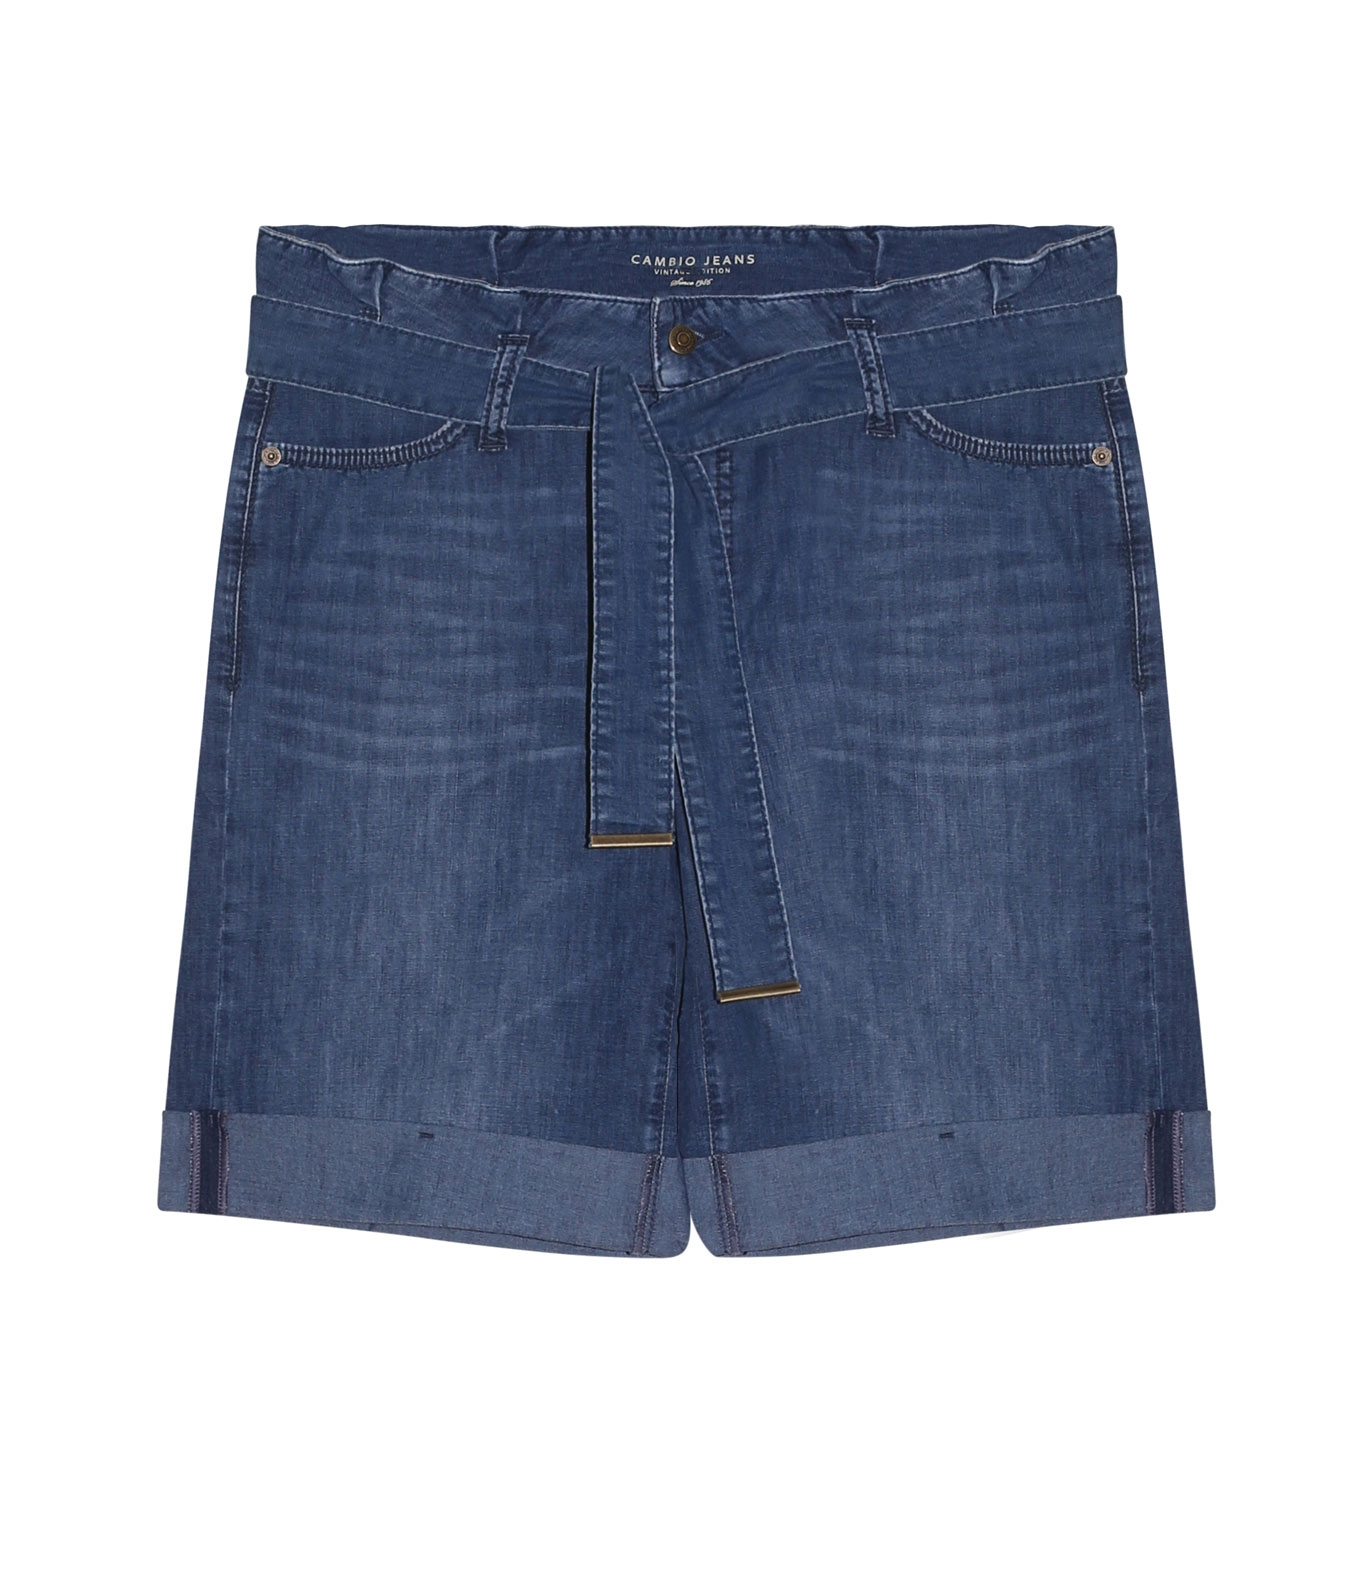 BERMUDA PHILINE BLUE DENIM